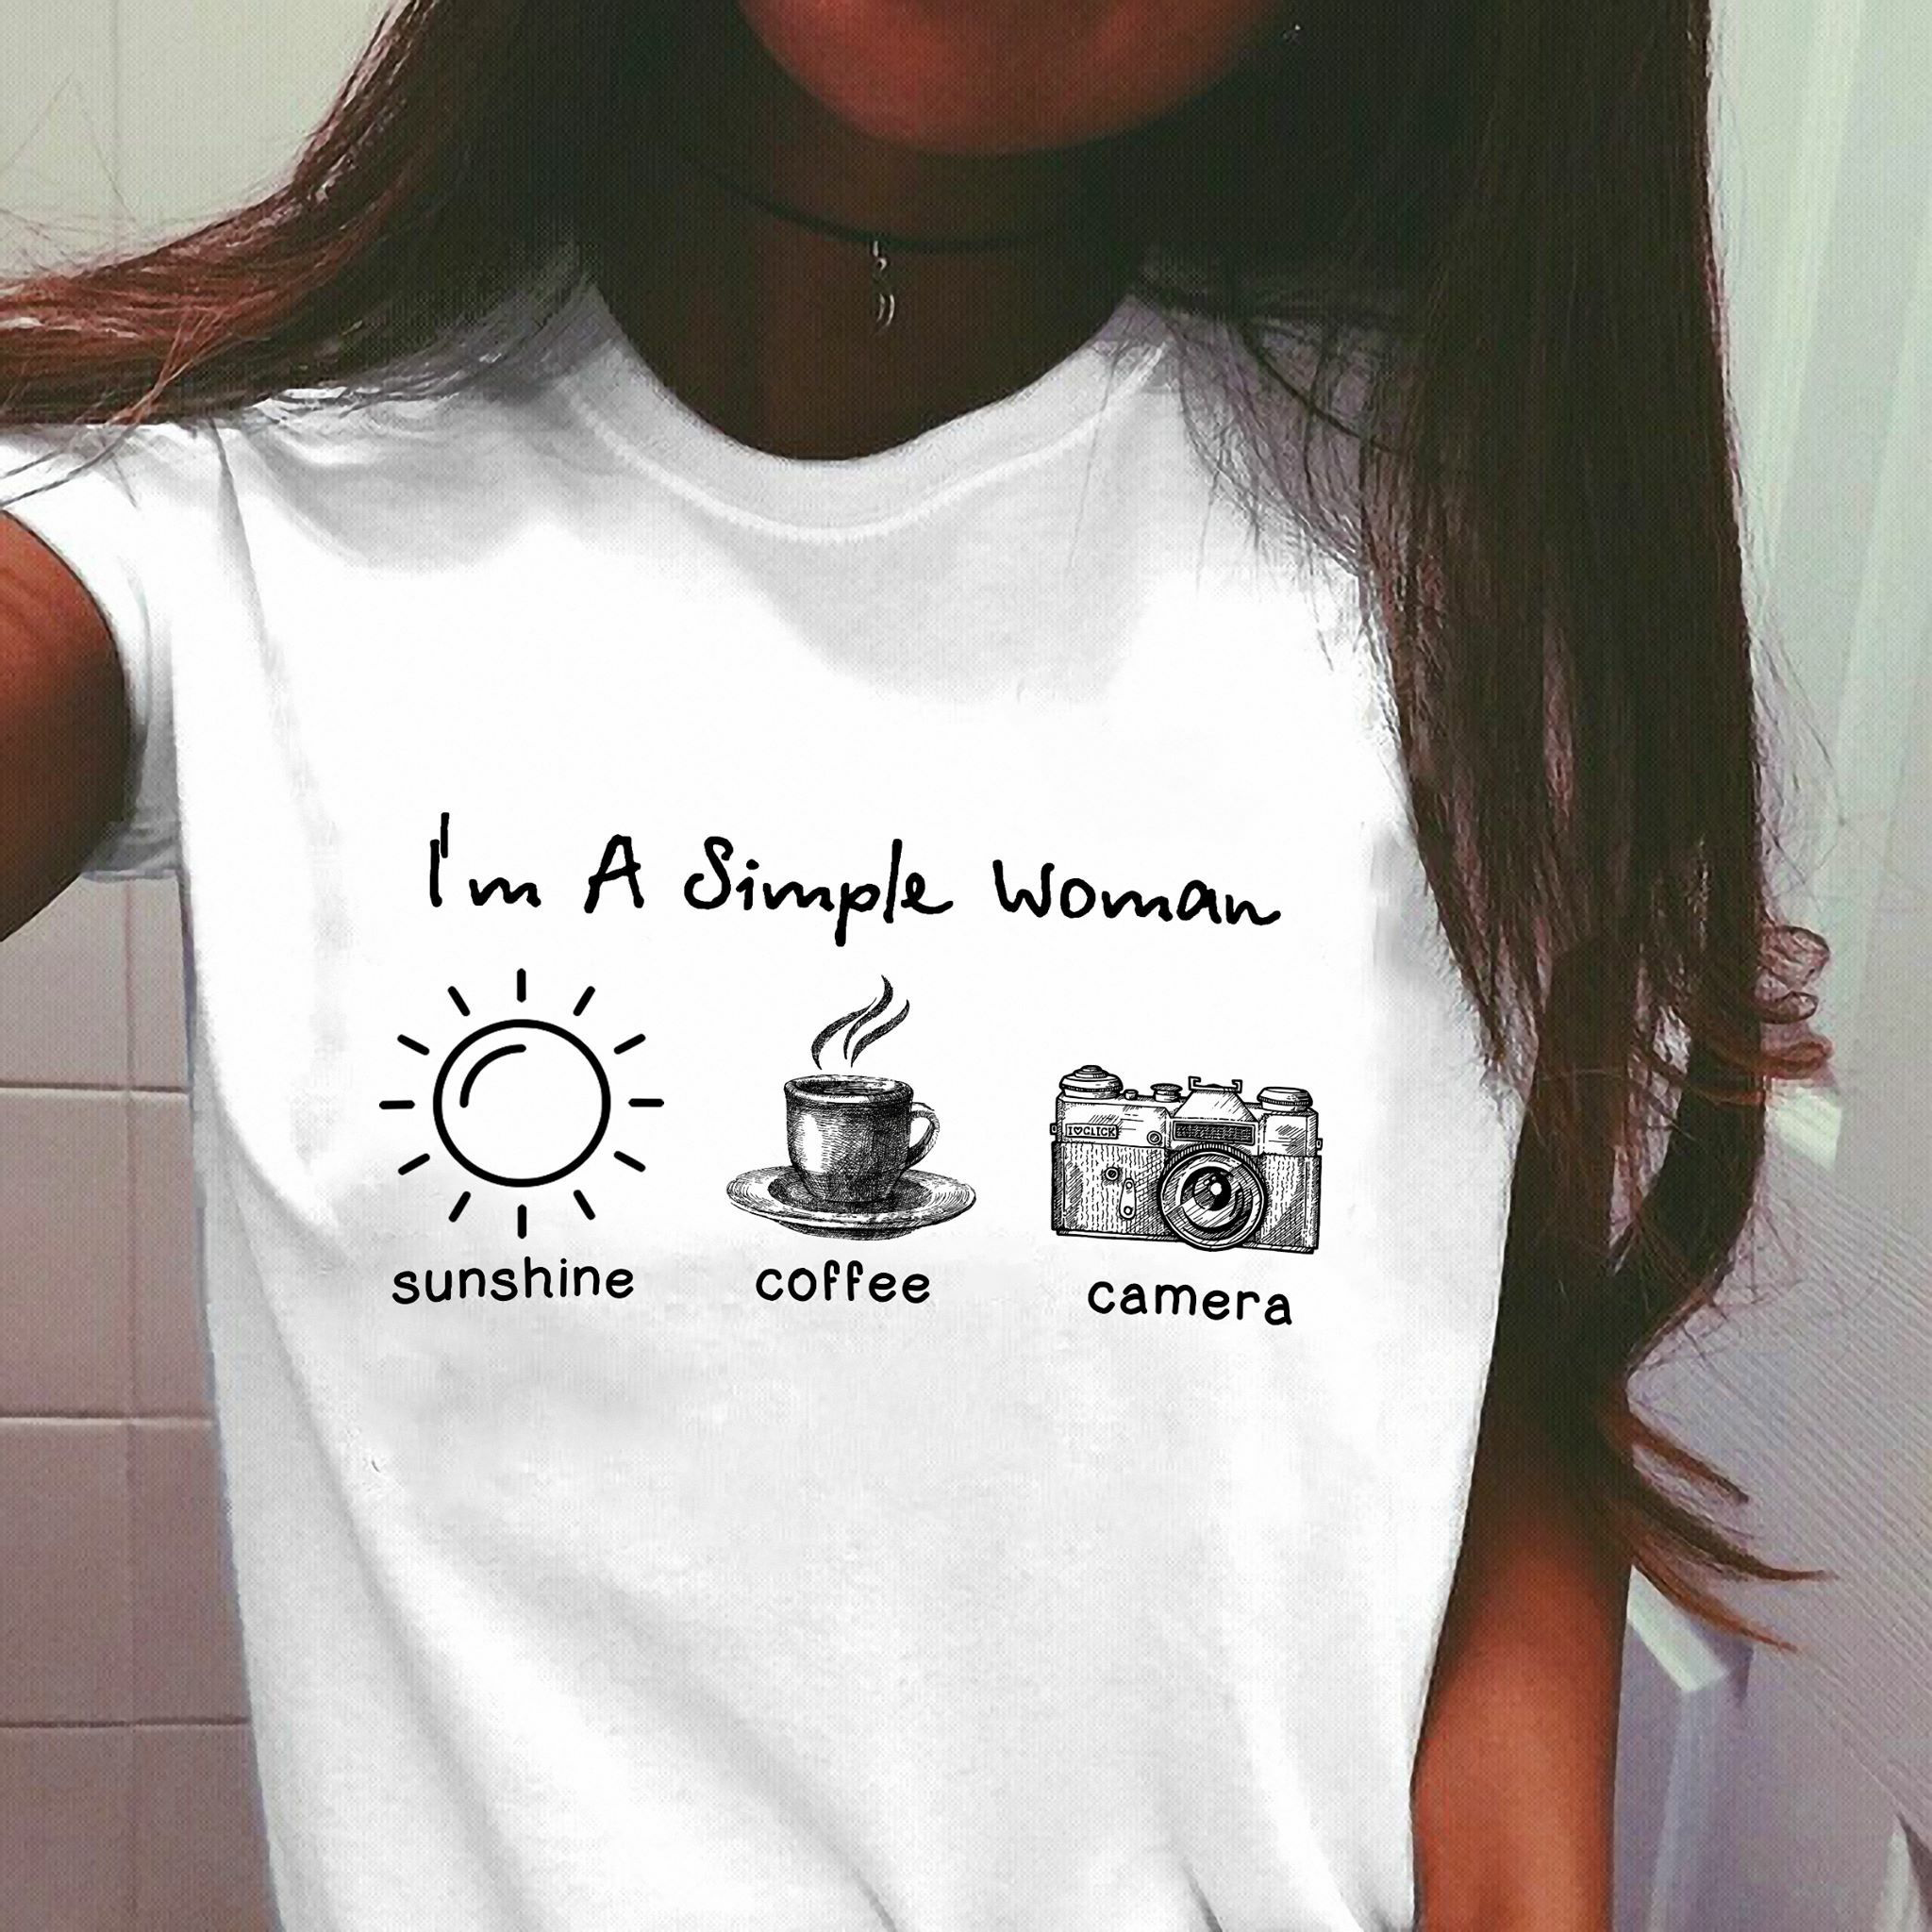 I'm A Simple Woman Sunshine Coffee And Camera White Shirt Women's Crew-Neck T-Shirt Grunge Aesthetic Slogan Camiseta Tees Tops